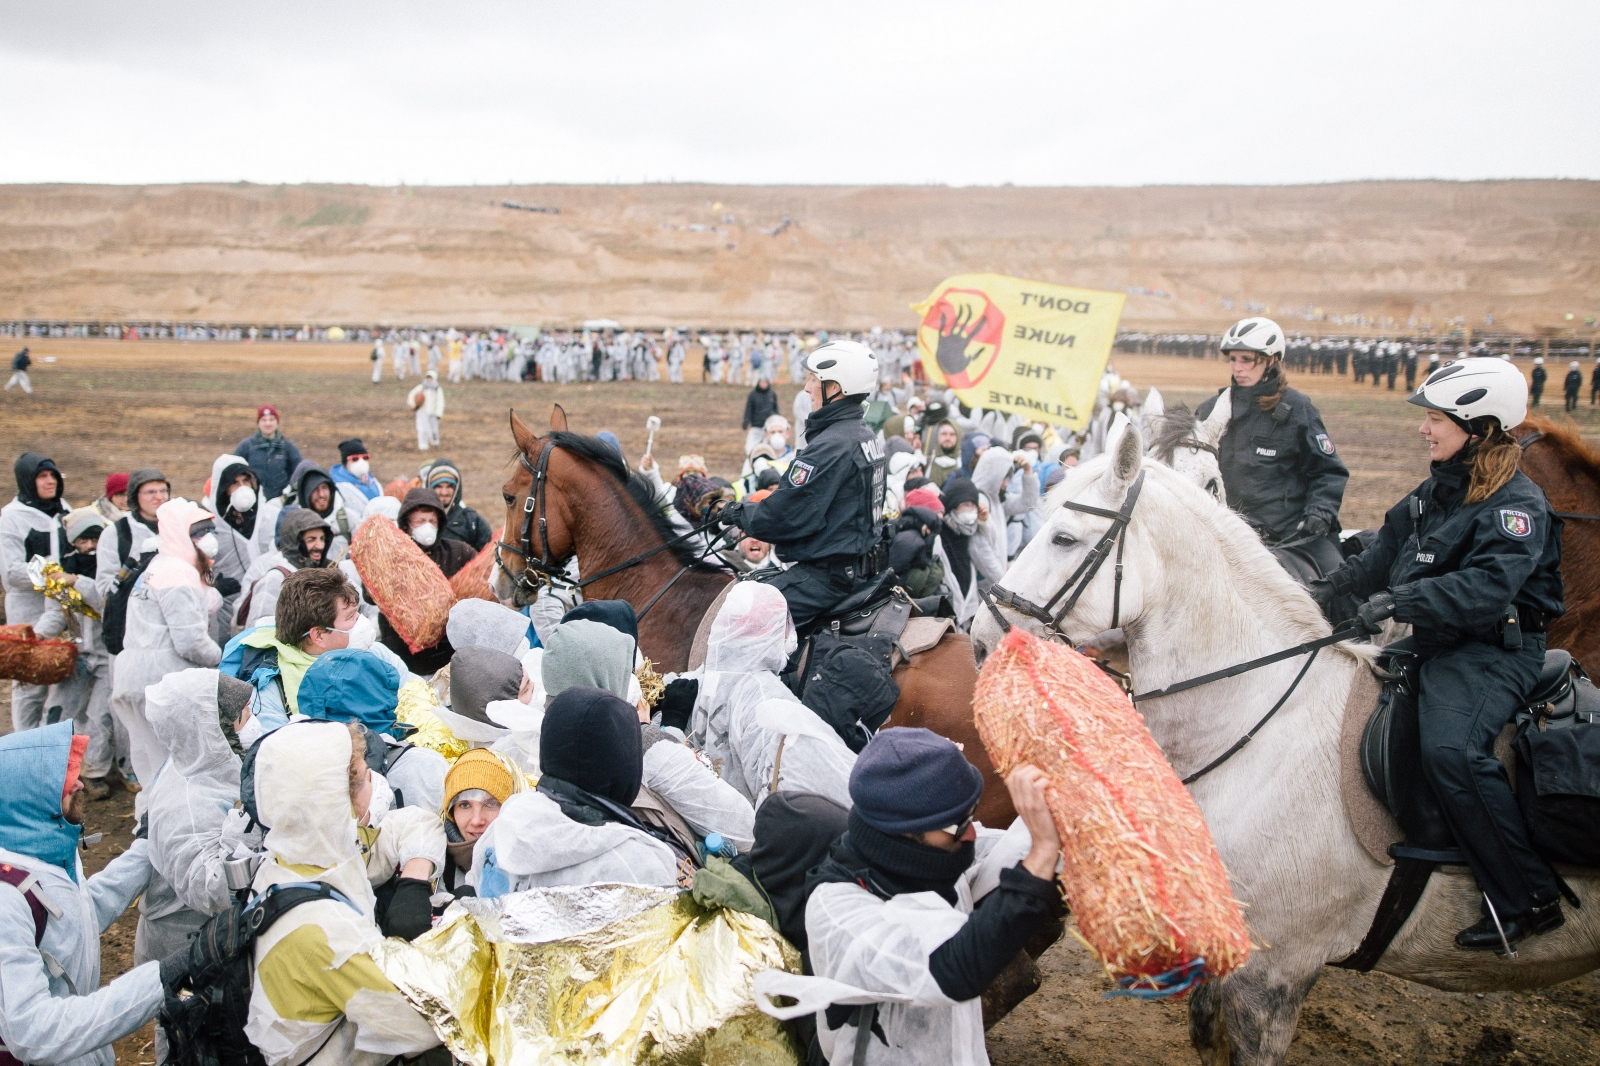 Police on horses pushes into group of activists in the mine of Hambach. 11-05-2017